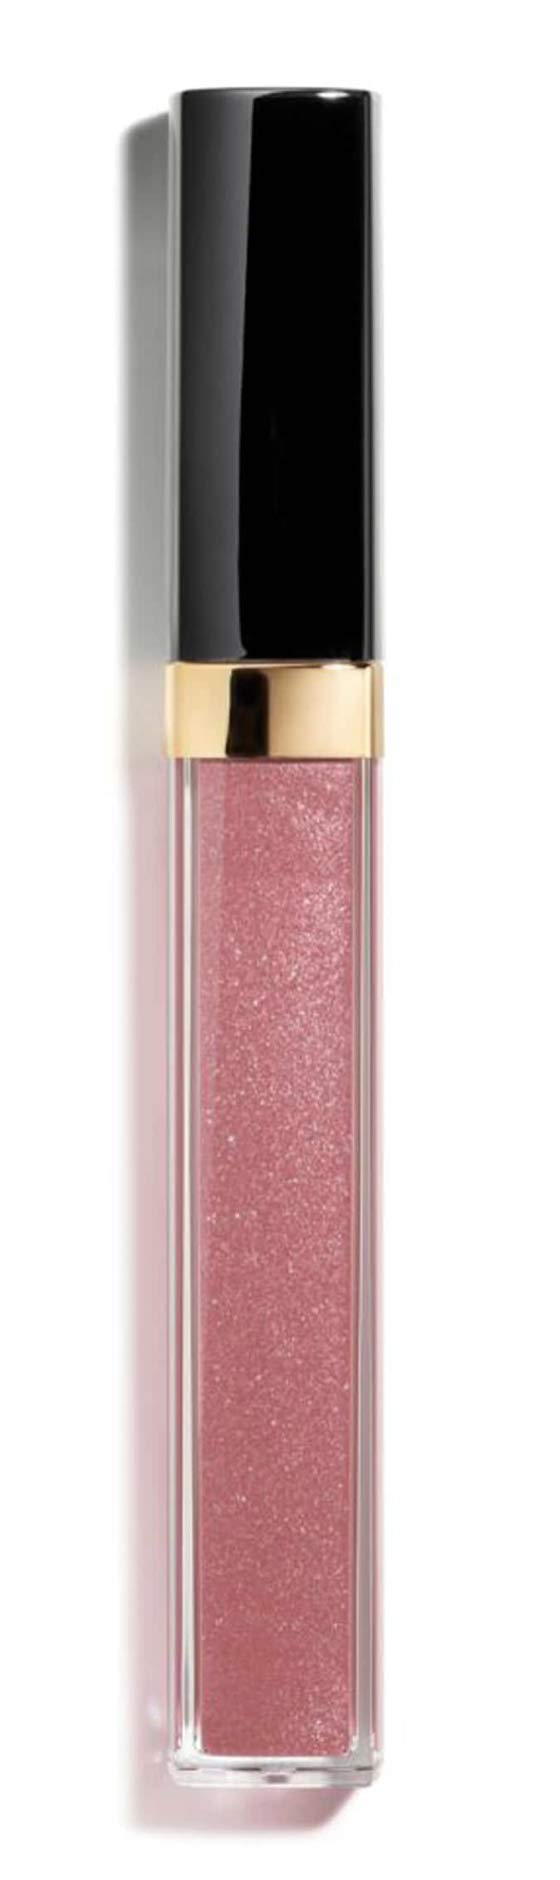 ROUGE COCO GLOSS MOISTURIZING GLOSSIMER Color: 119 Bourgeoisie by